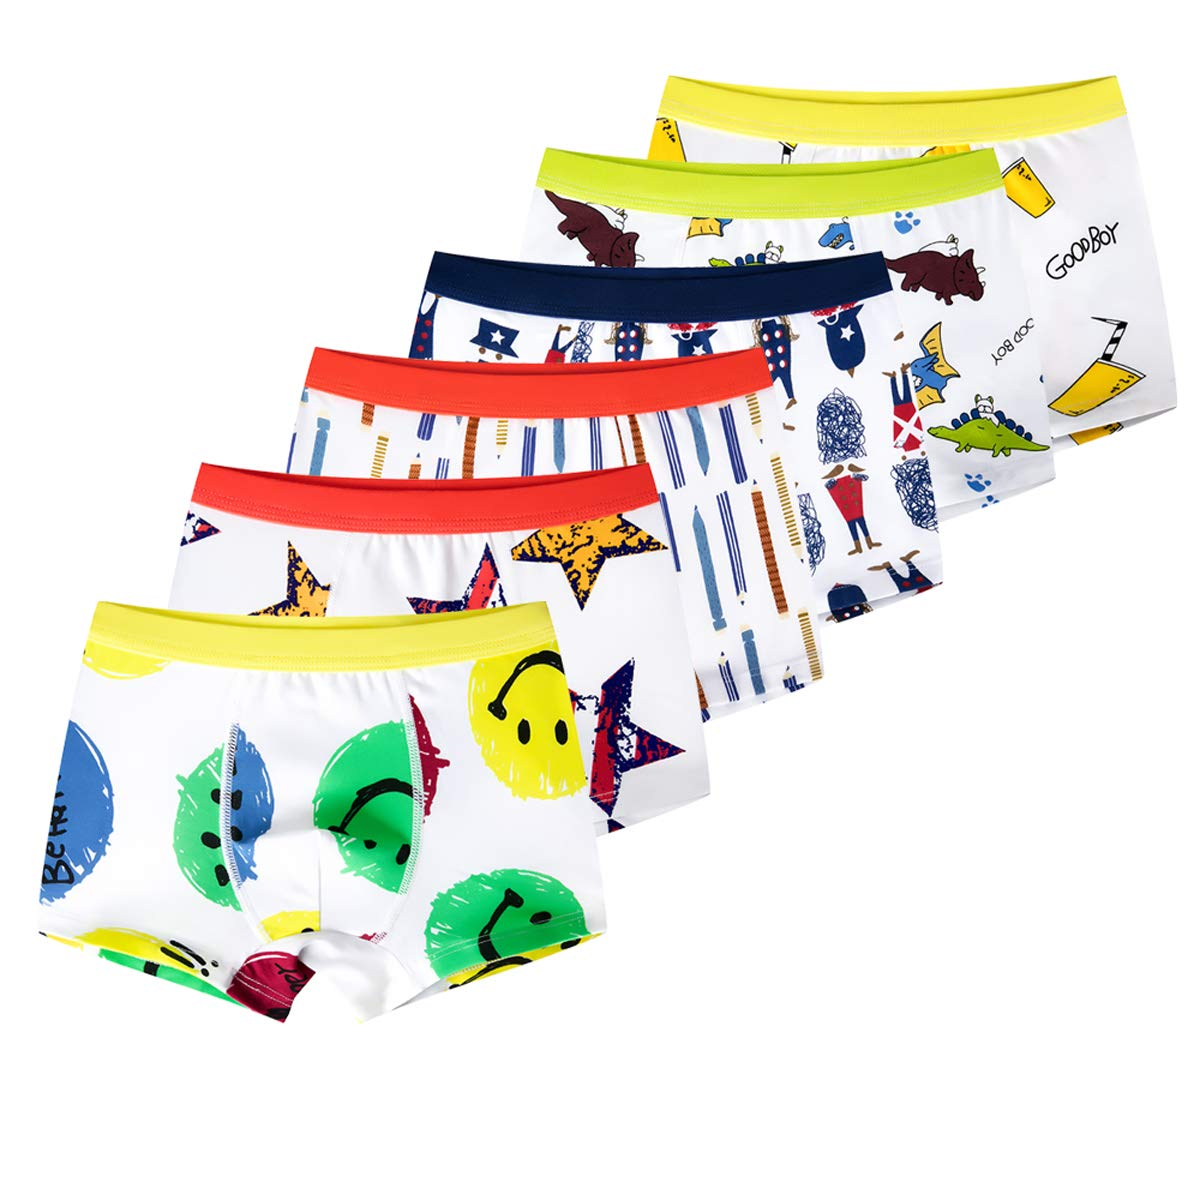 ALALIMINI Toddler Boys' Cotton Underwear 6-Pack Little Kids Boxer Brief Airy Shorts 3T 4T 5T 6T